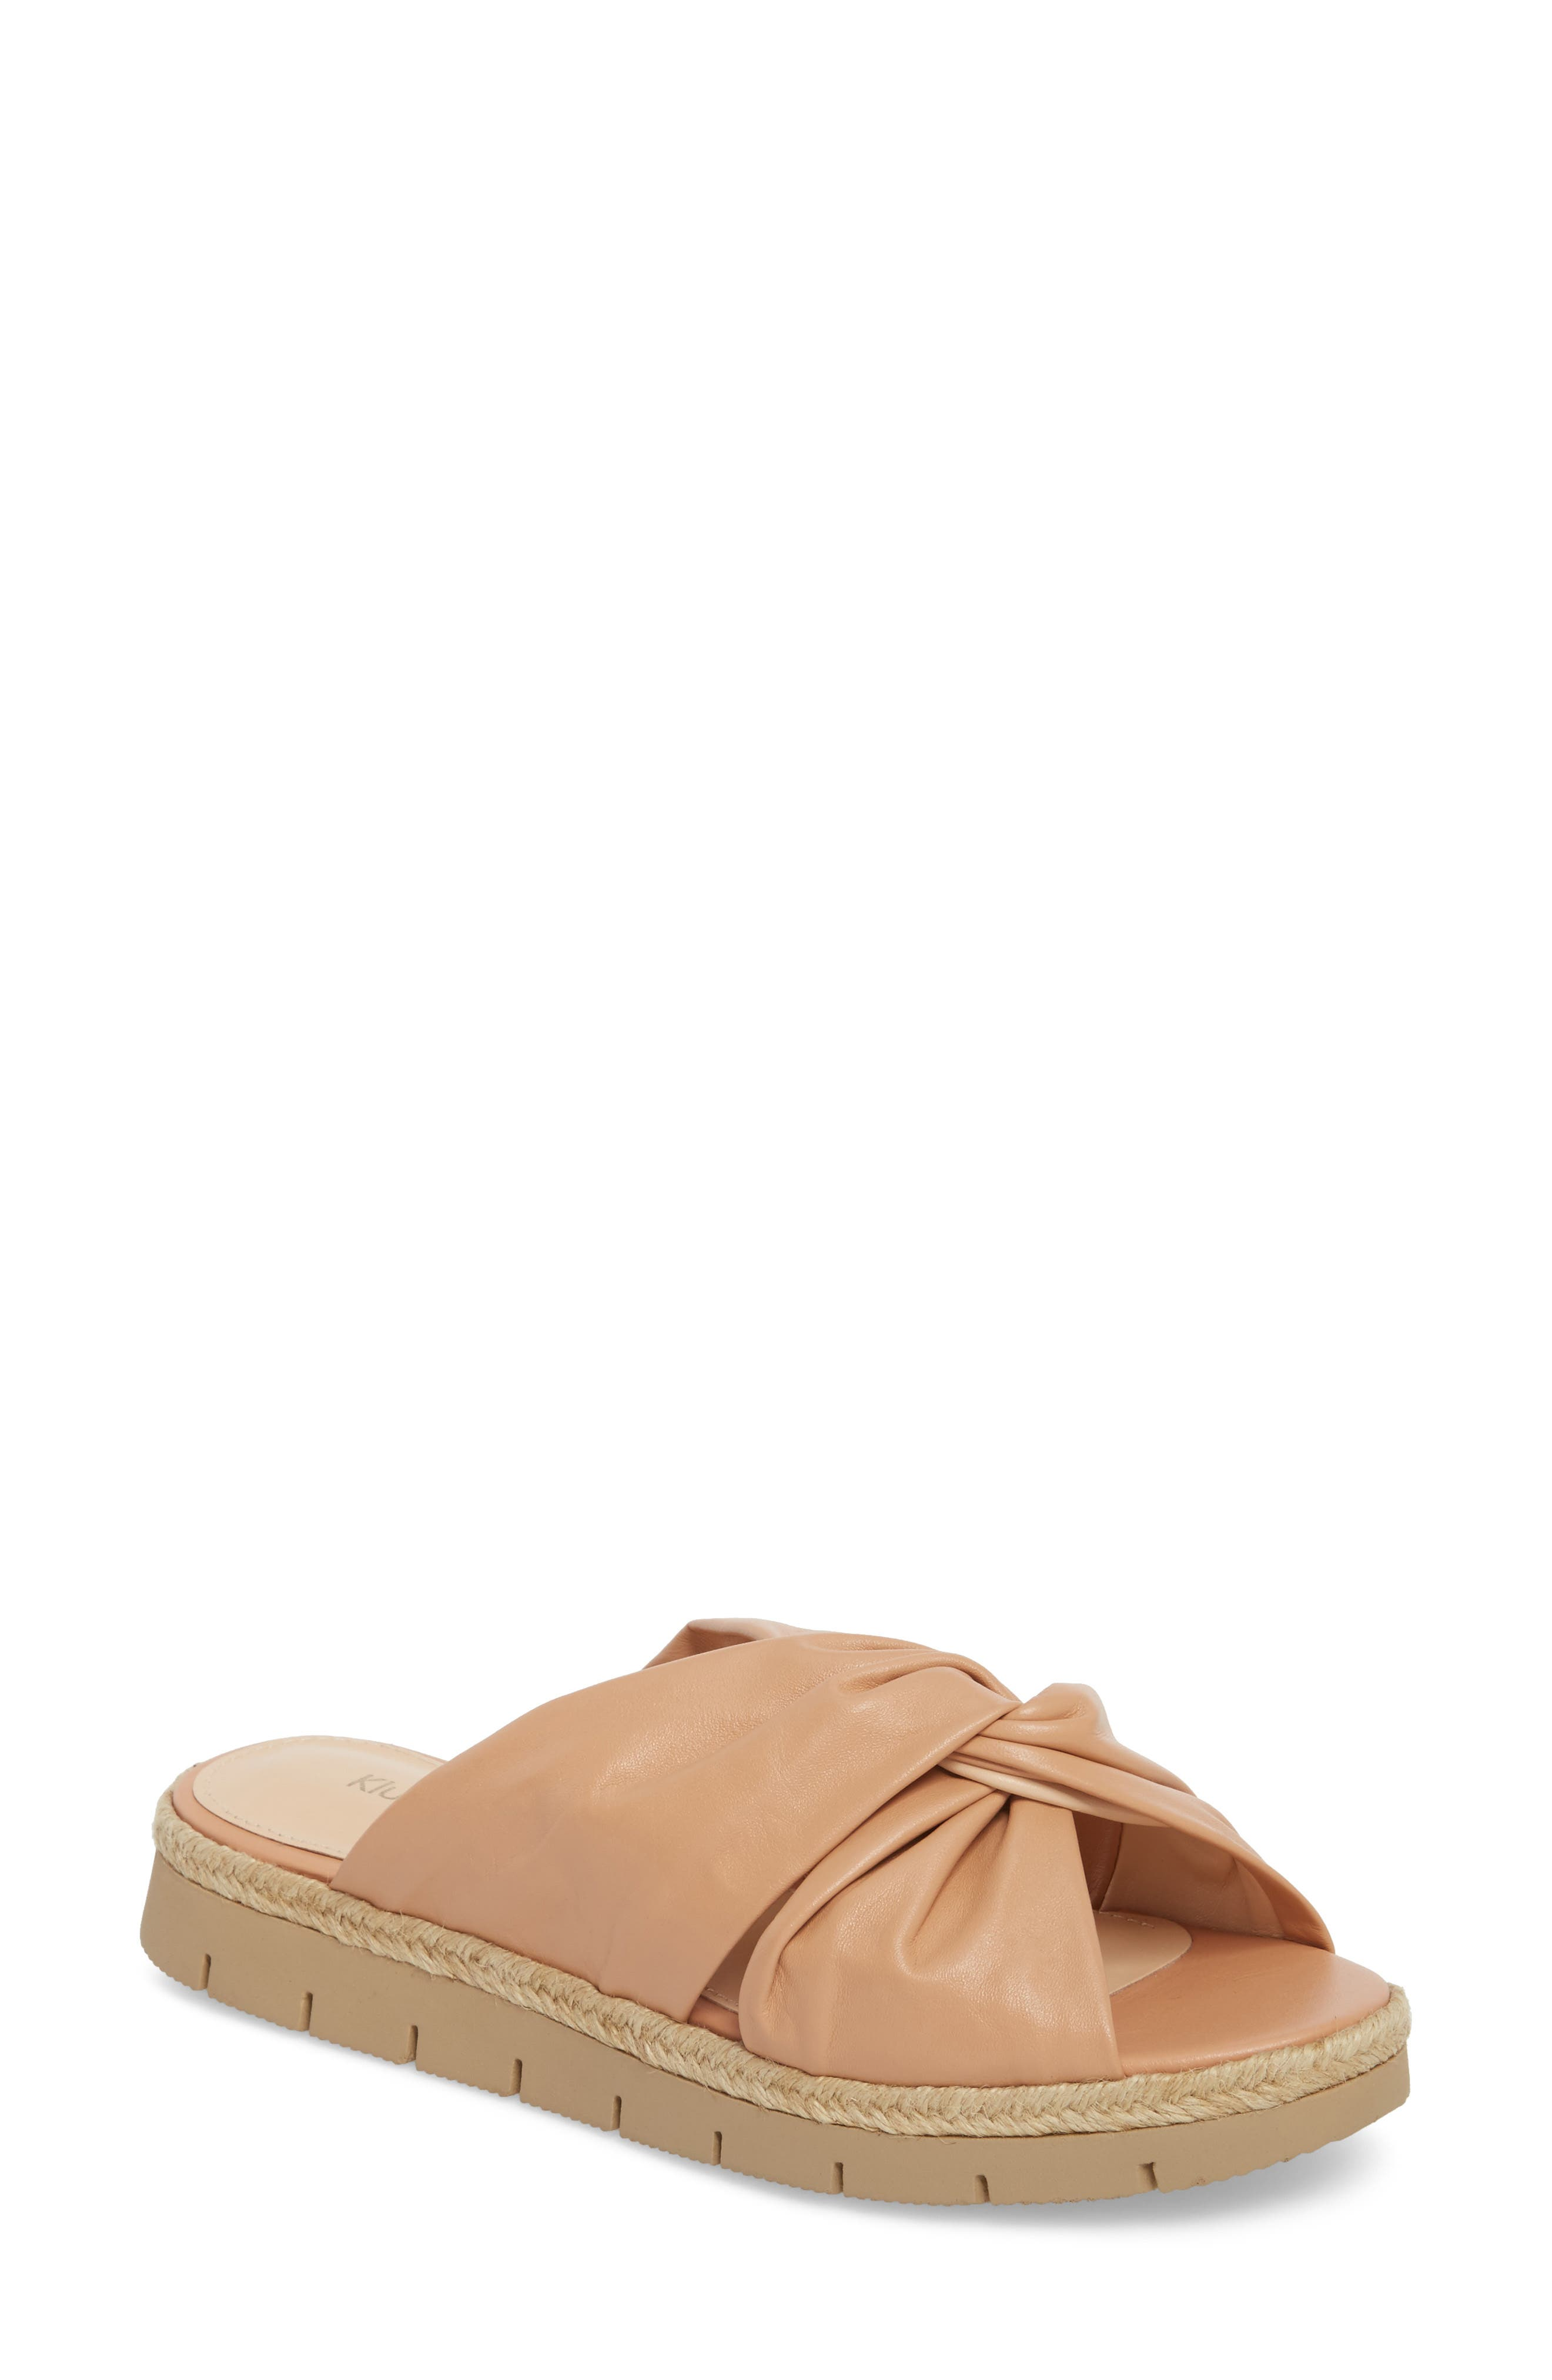 KLUB NICO Charlie Slide Sandal, Main, color, PEACH LEATHER